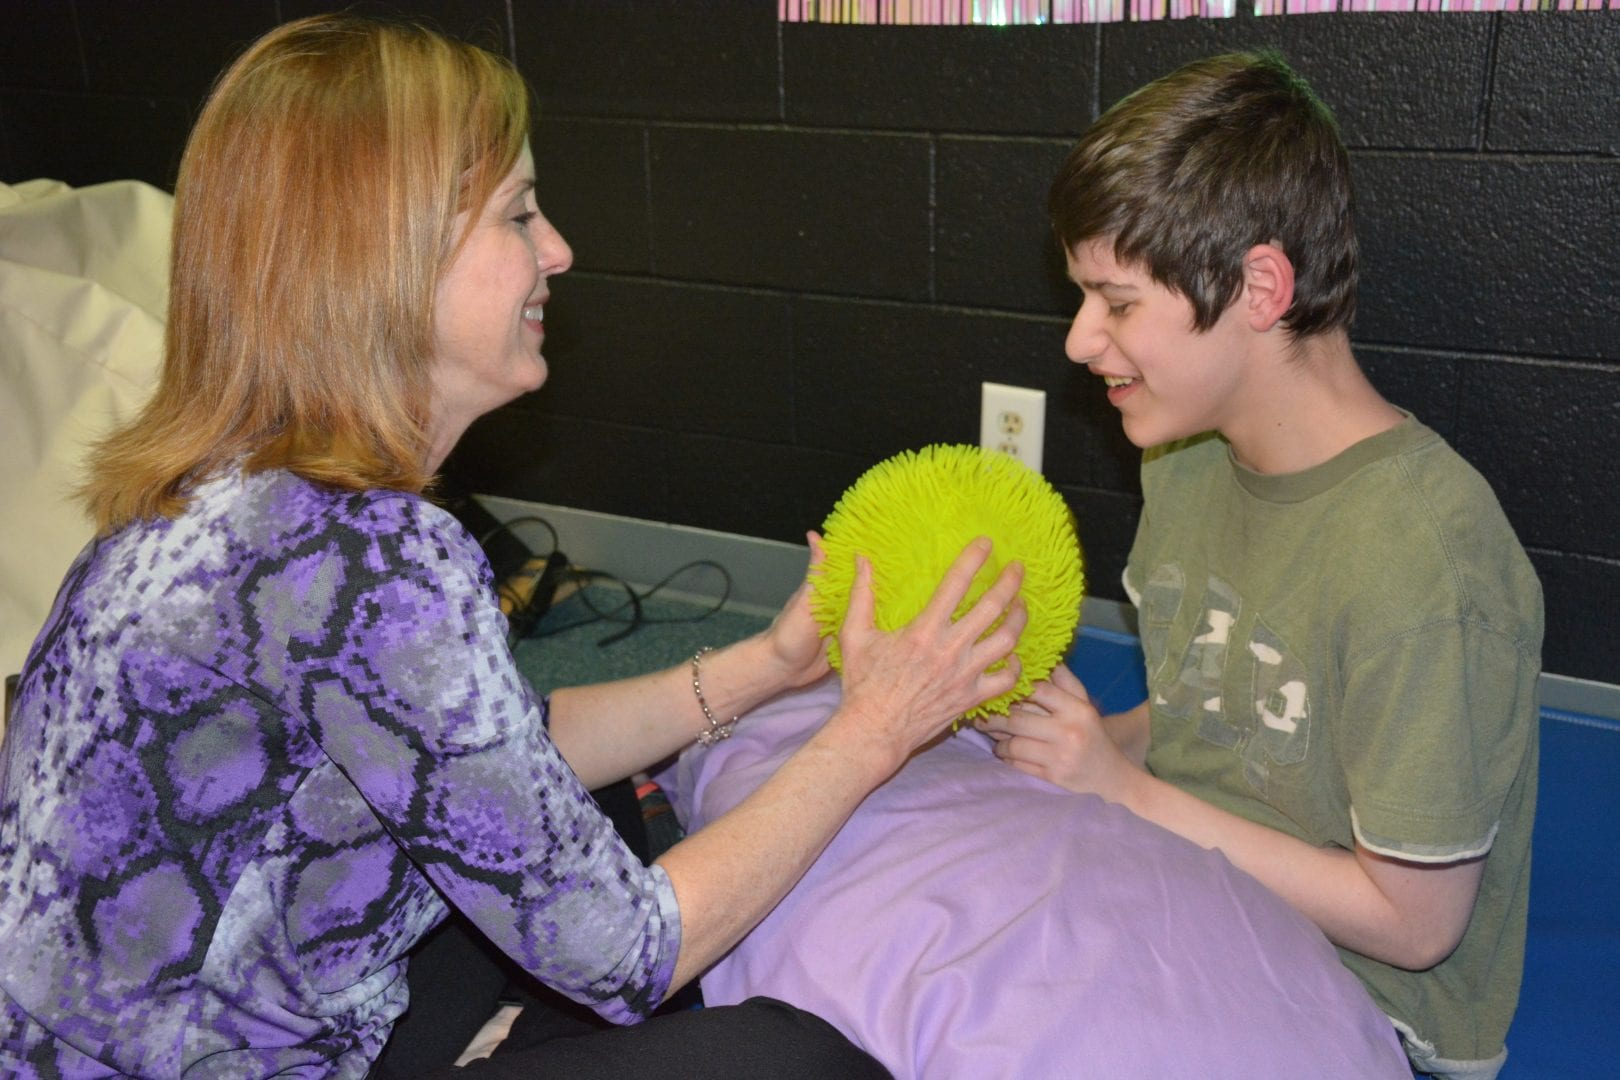 A learner begins to imitate his teacher during a Sensory Learning Kit play routine.